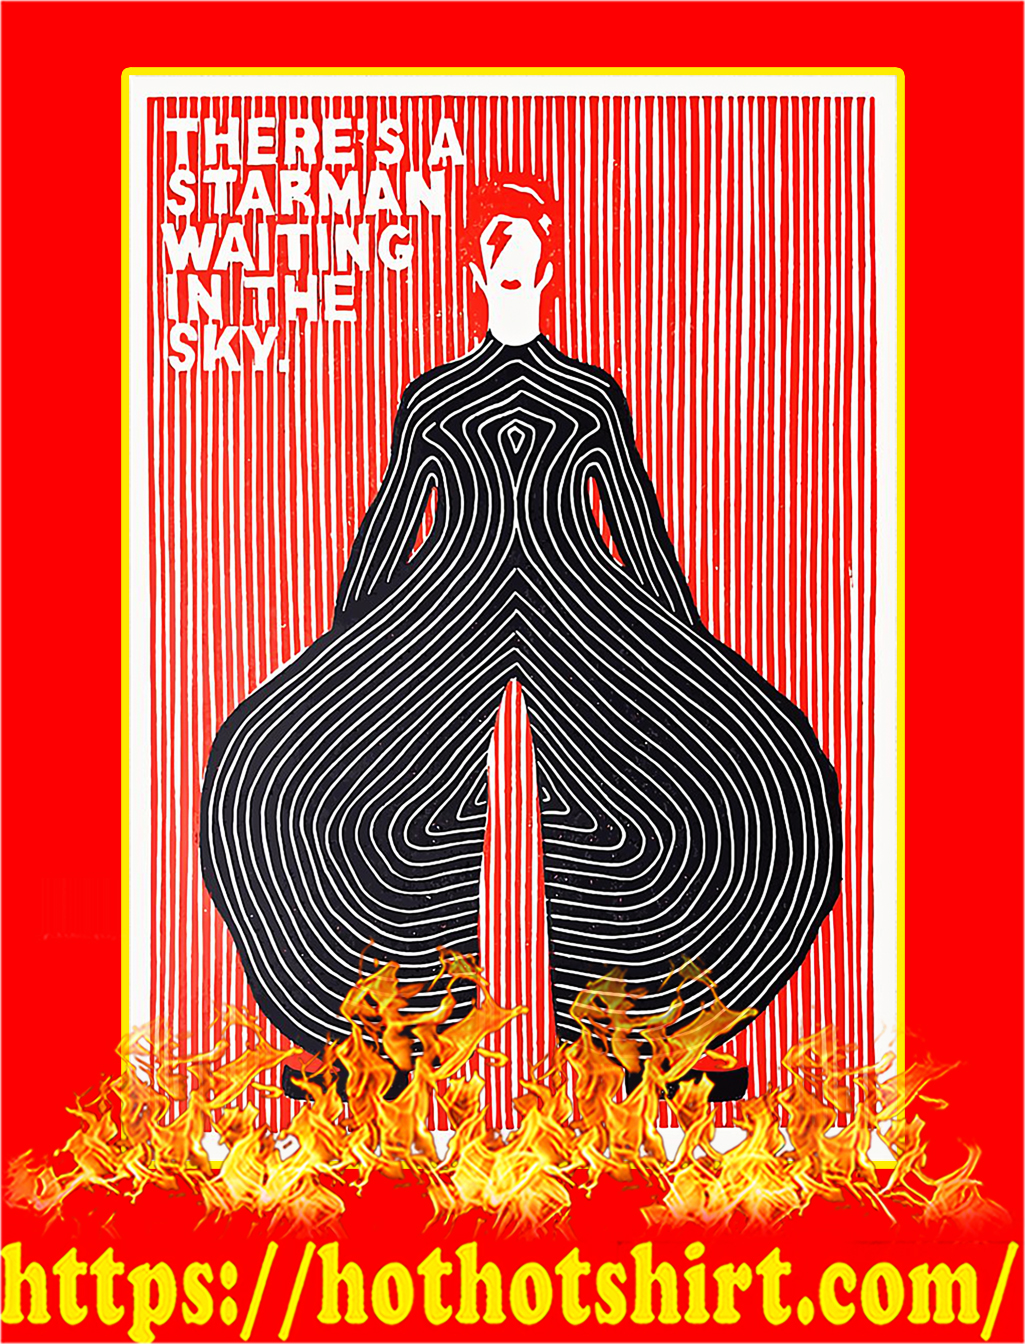 David Bowie There's a starman waiting in the sky poster - A4